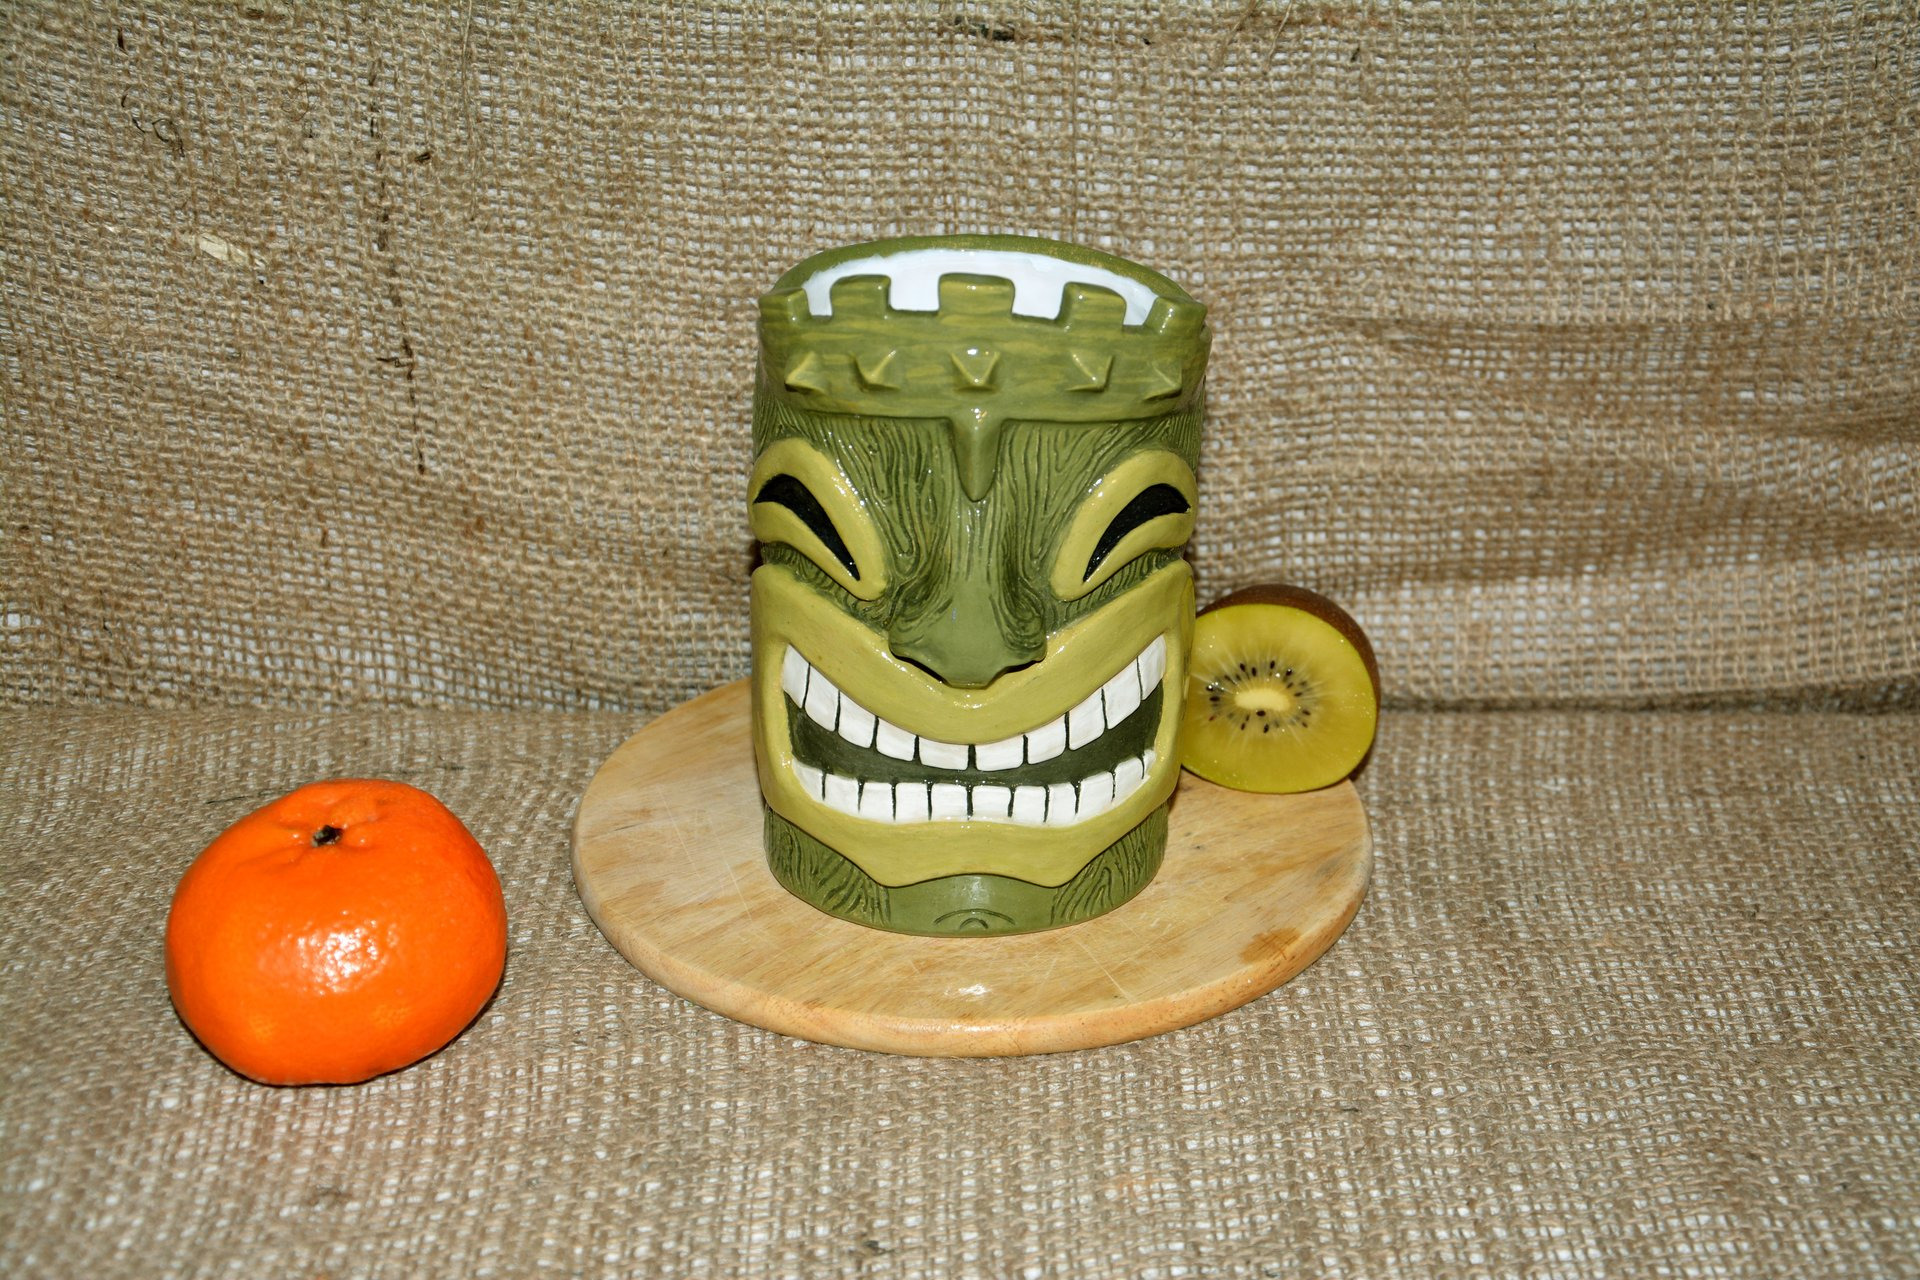 Huge Tiki Glass, color- green, height - 14 cm, volume - 0,7 l, photo 4 of 5.